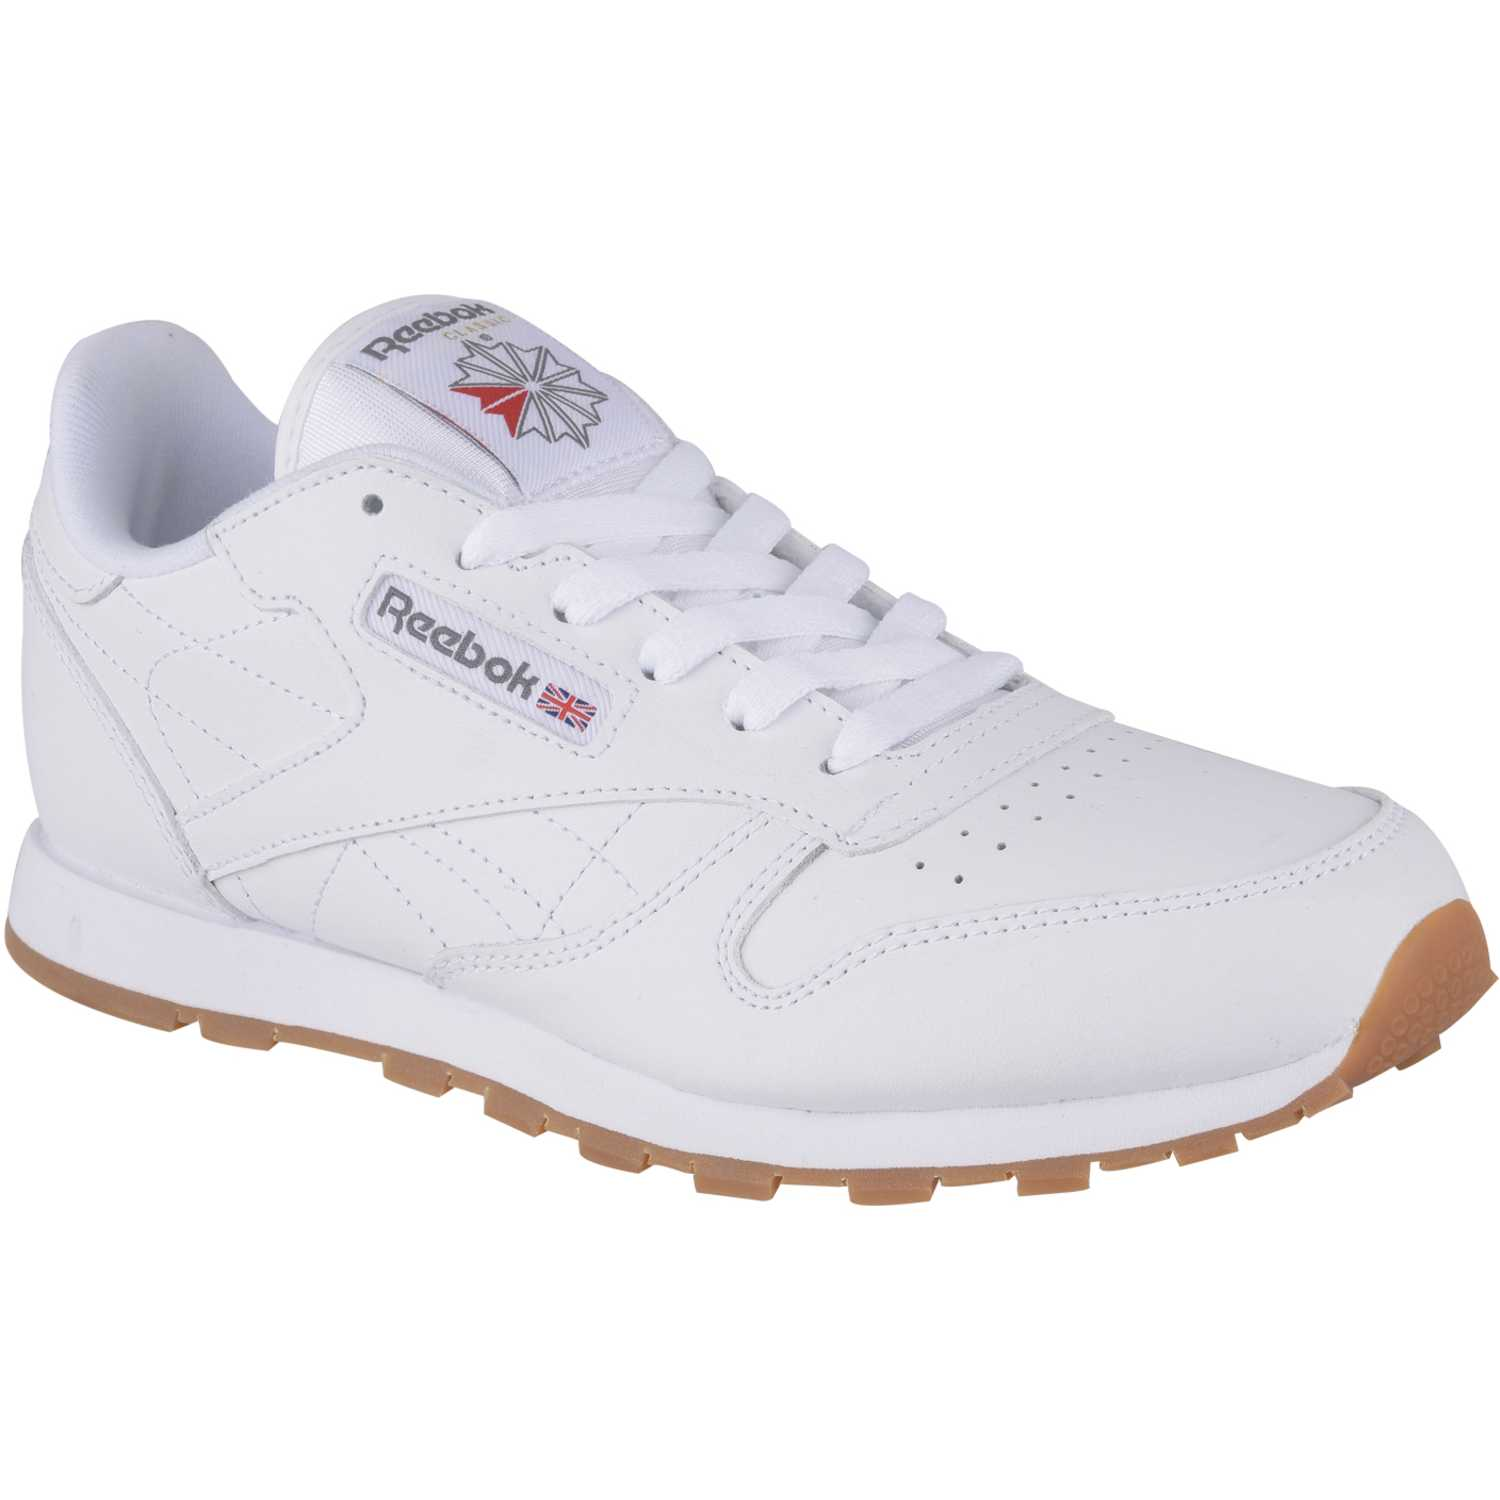 Reebok classic leather Blanco Walking